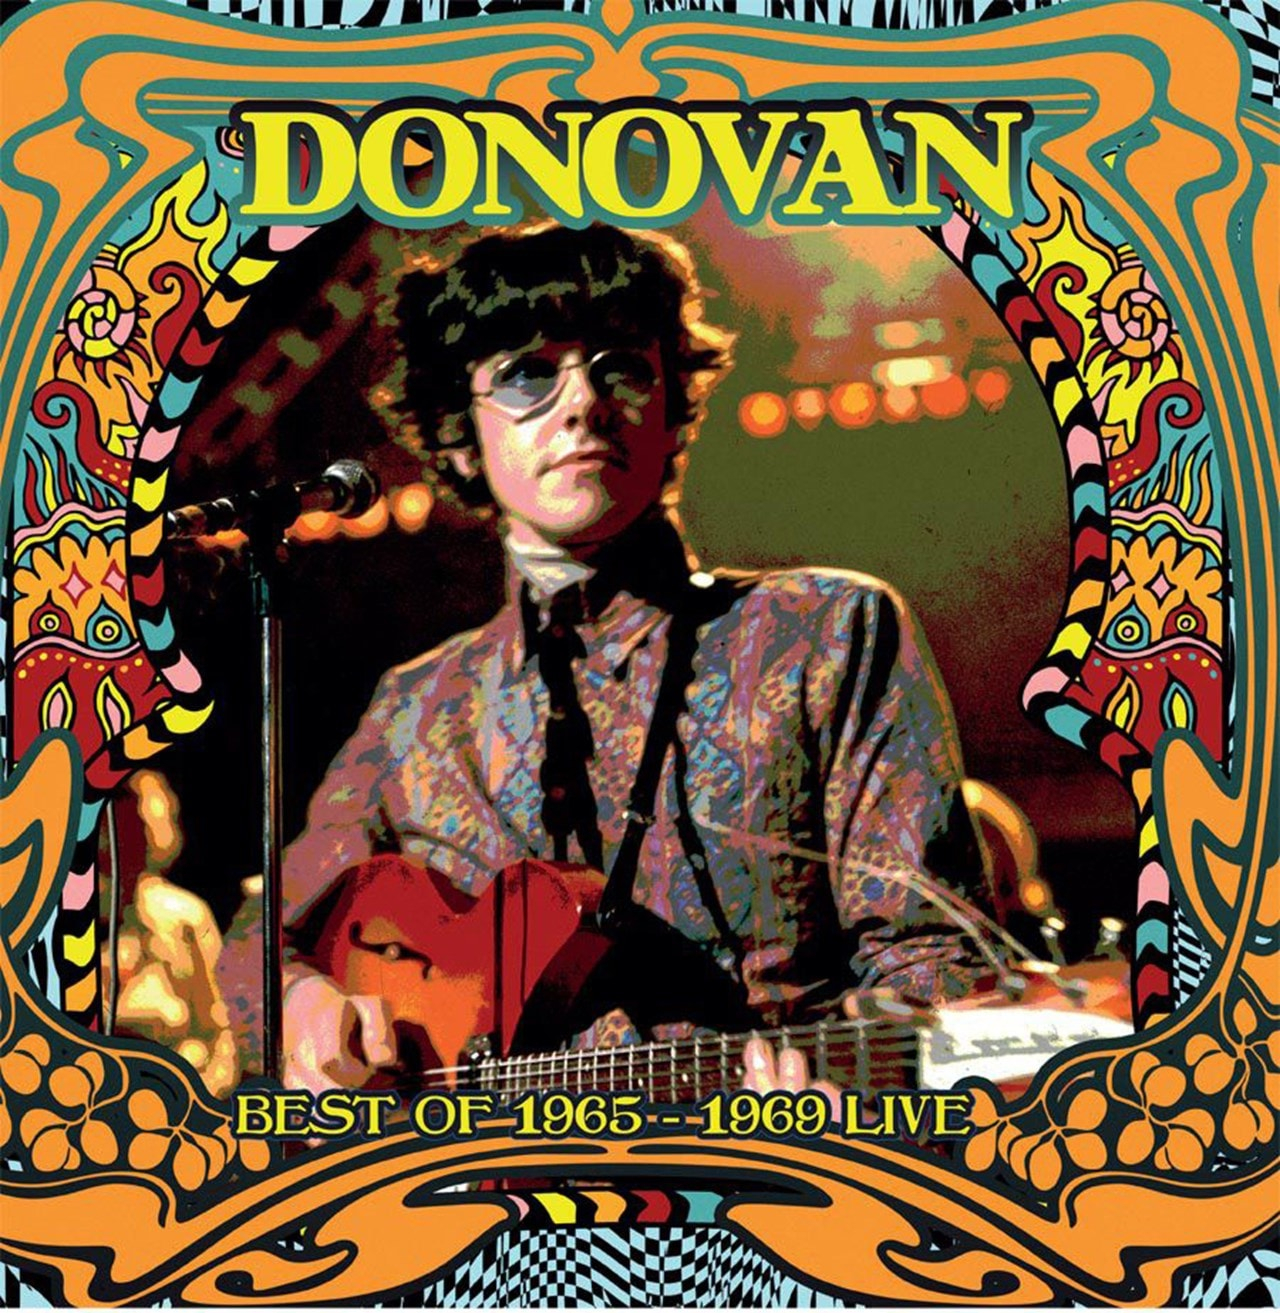 Best of 1965-1969 Live - 1